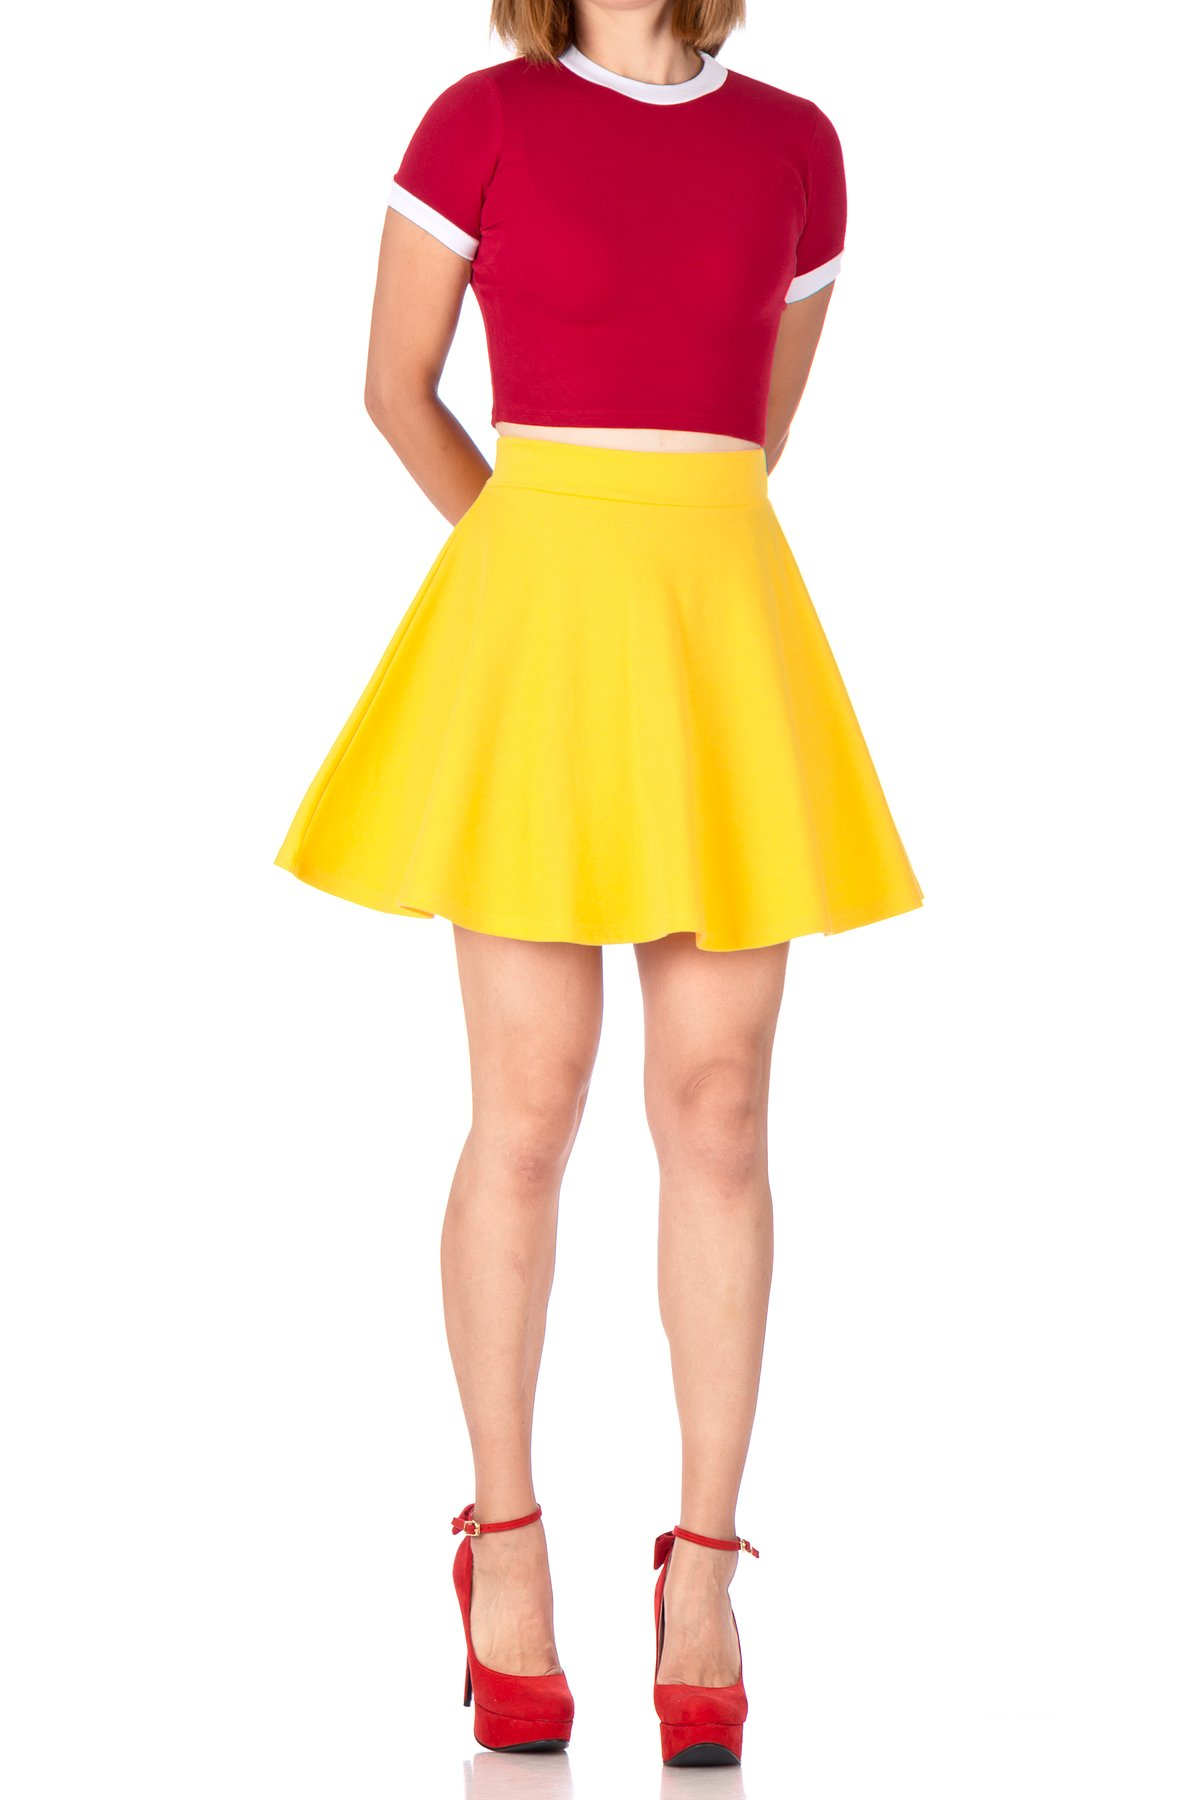 Basic Solid Stretchy Cotton High Waist A line Flared Skater Mini Skirt Yellow 01